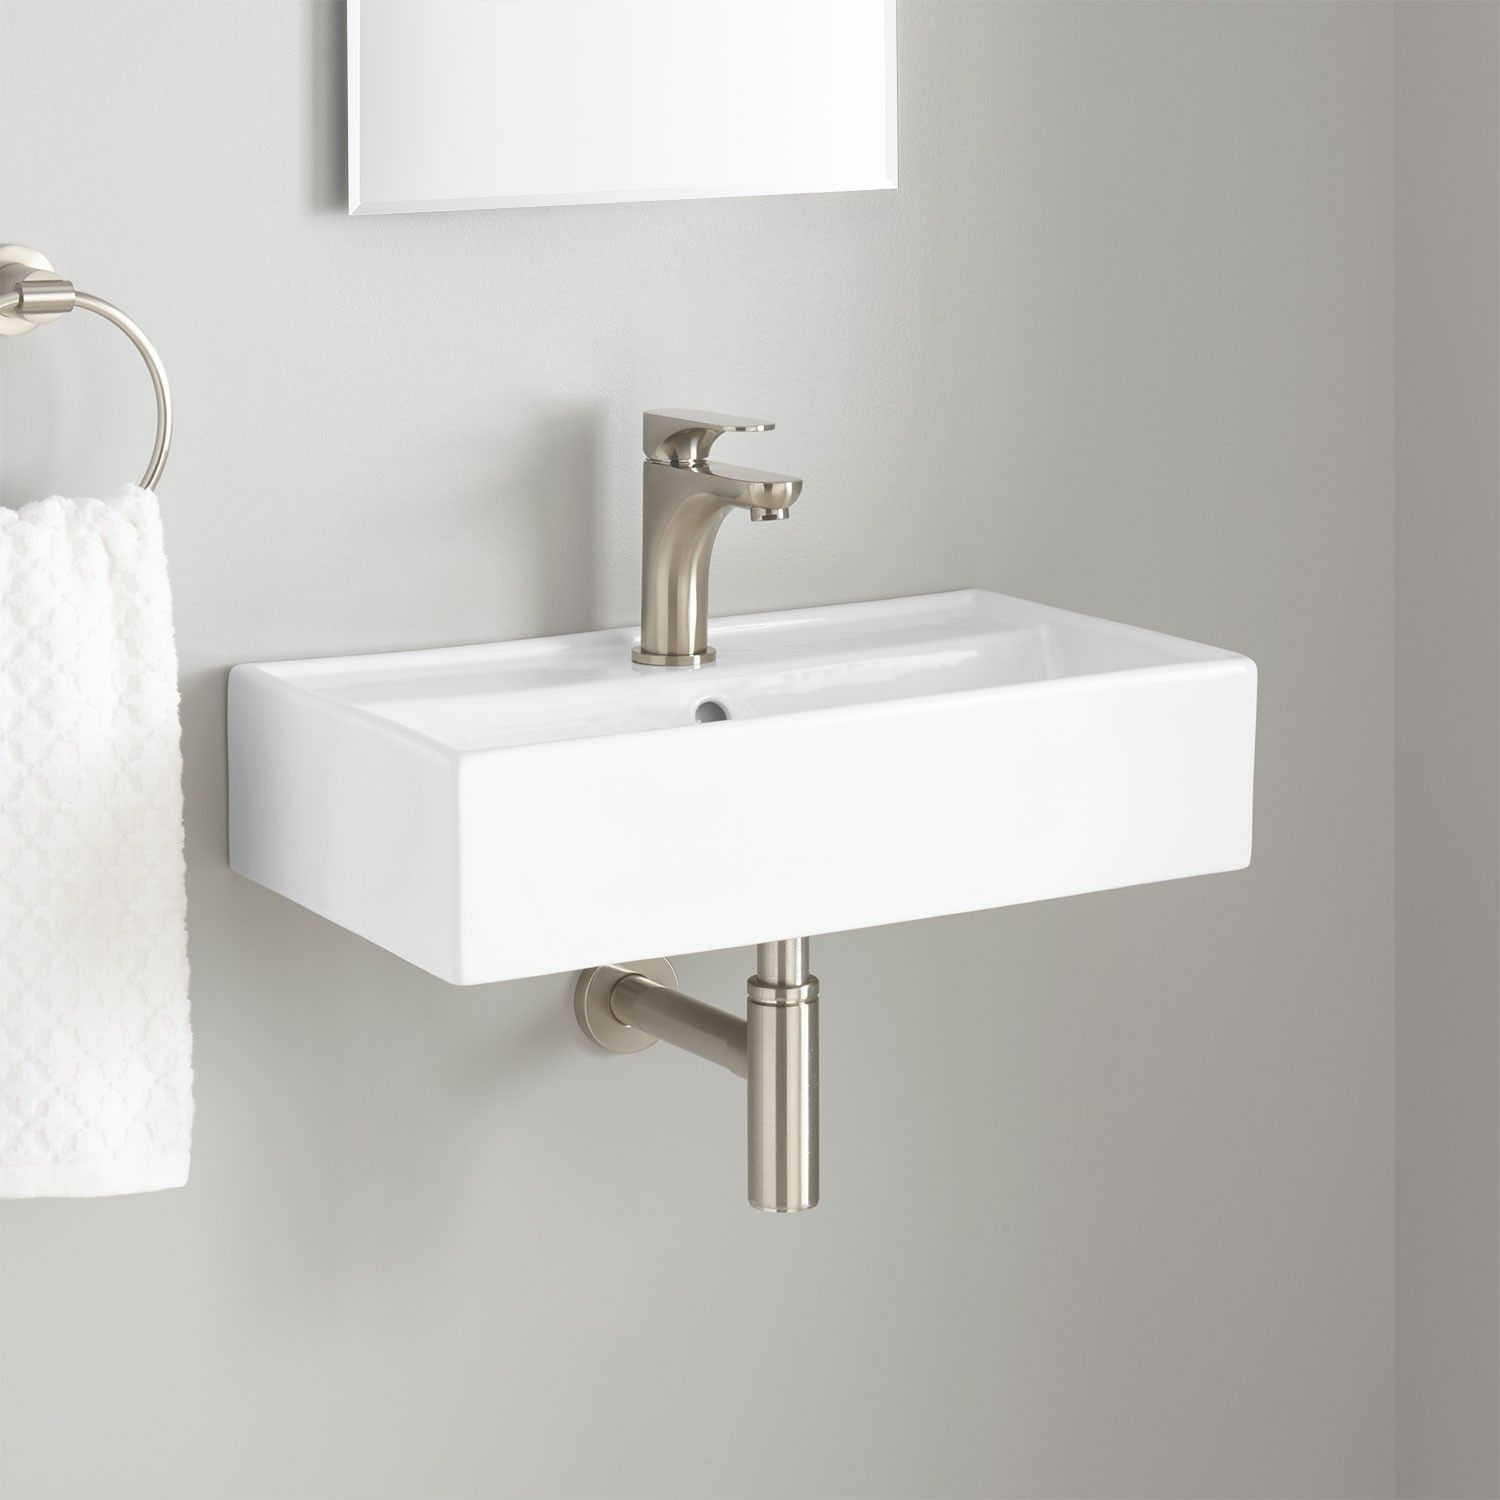 Small wall mounted bathroom sinks - Magali Wall Mount Bathroom Sink